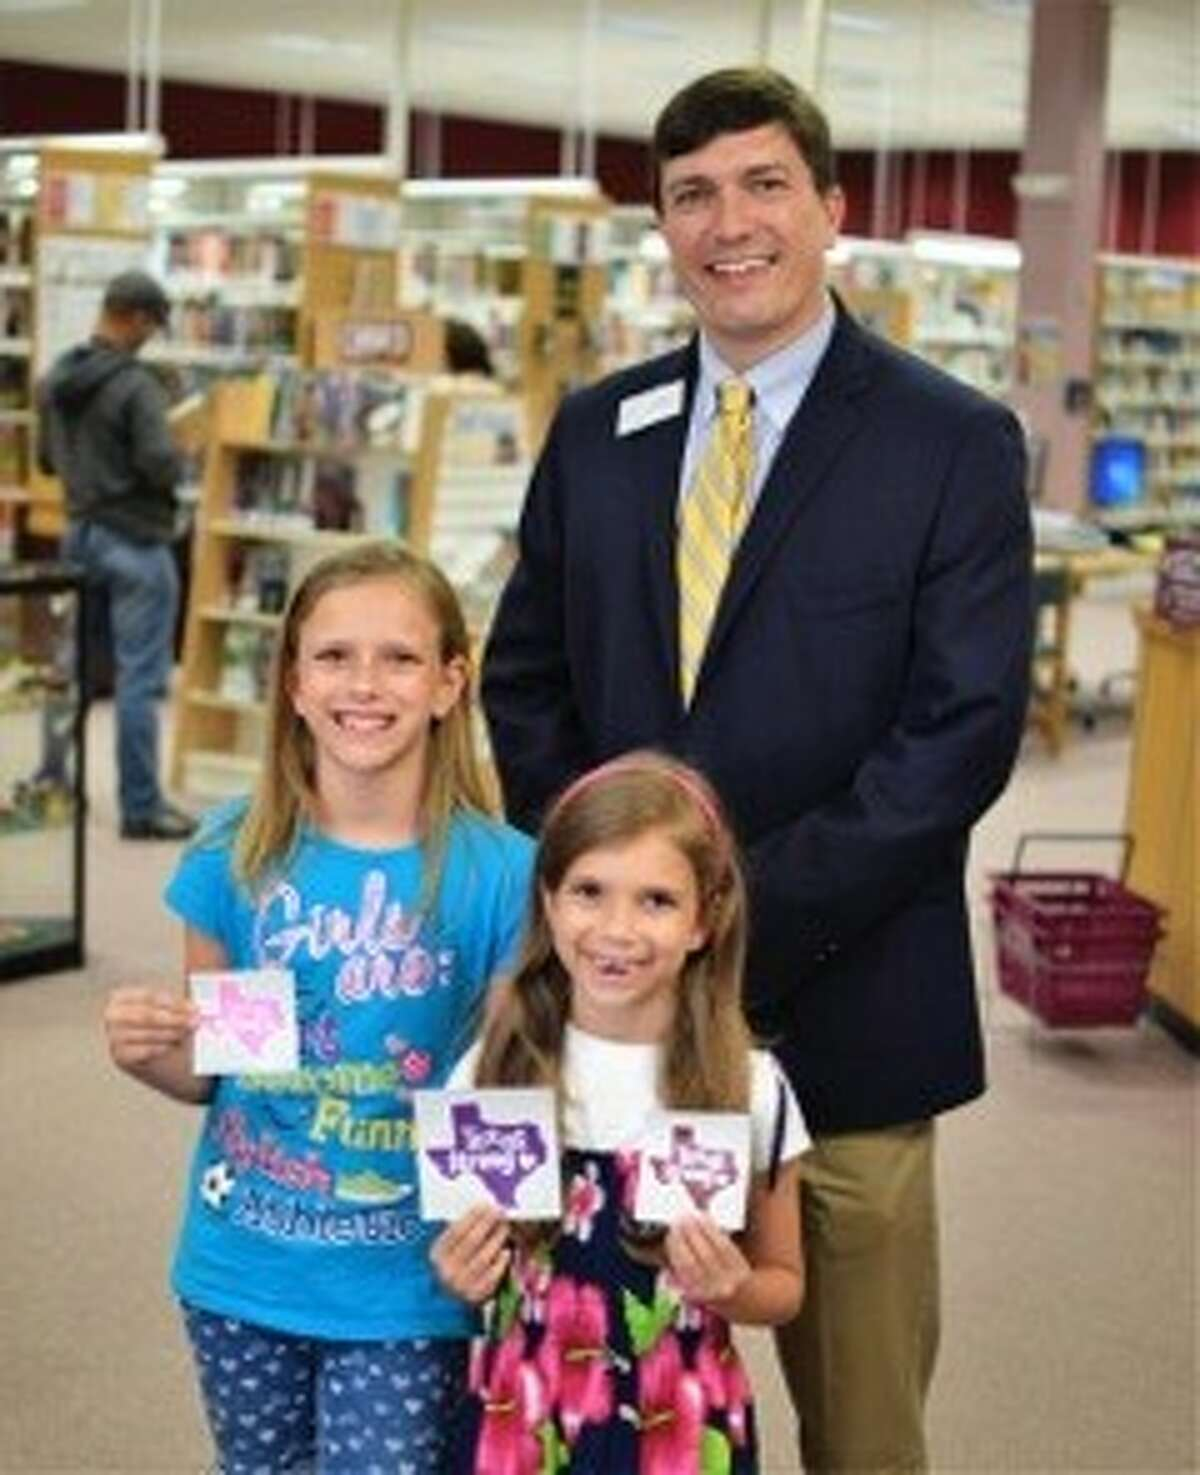 Hailey and London Ashton are pictured with Kingwood Library Branch Manager Ryan Fennell.